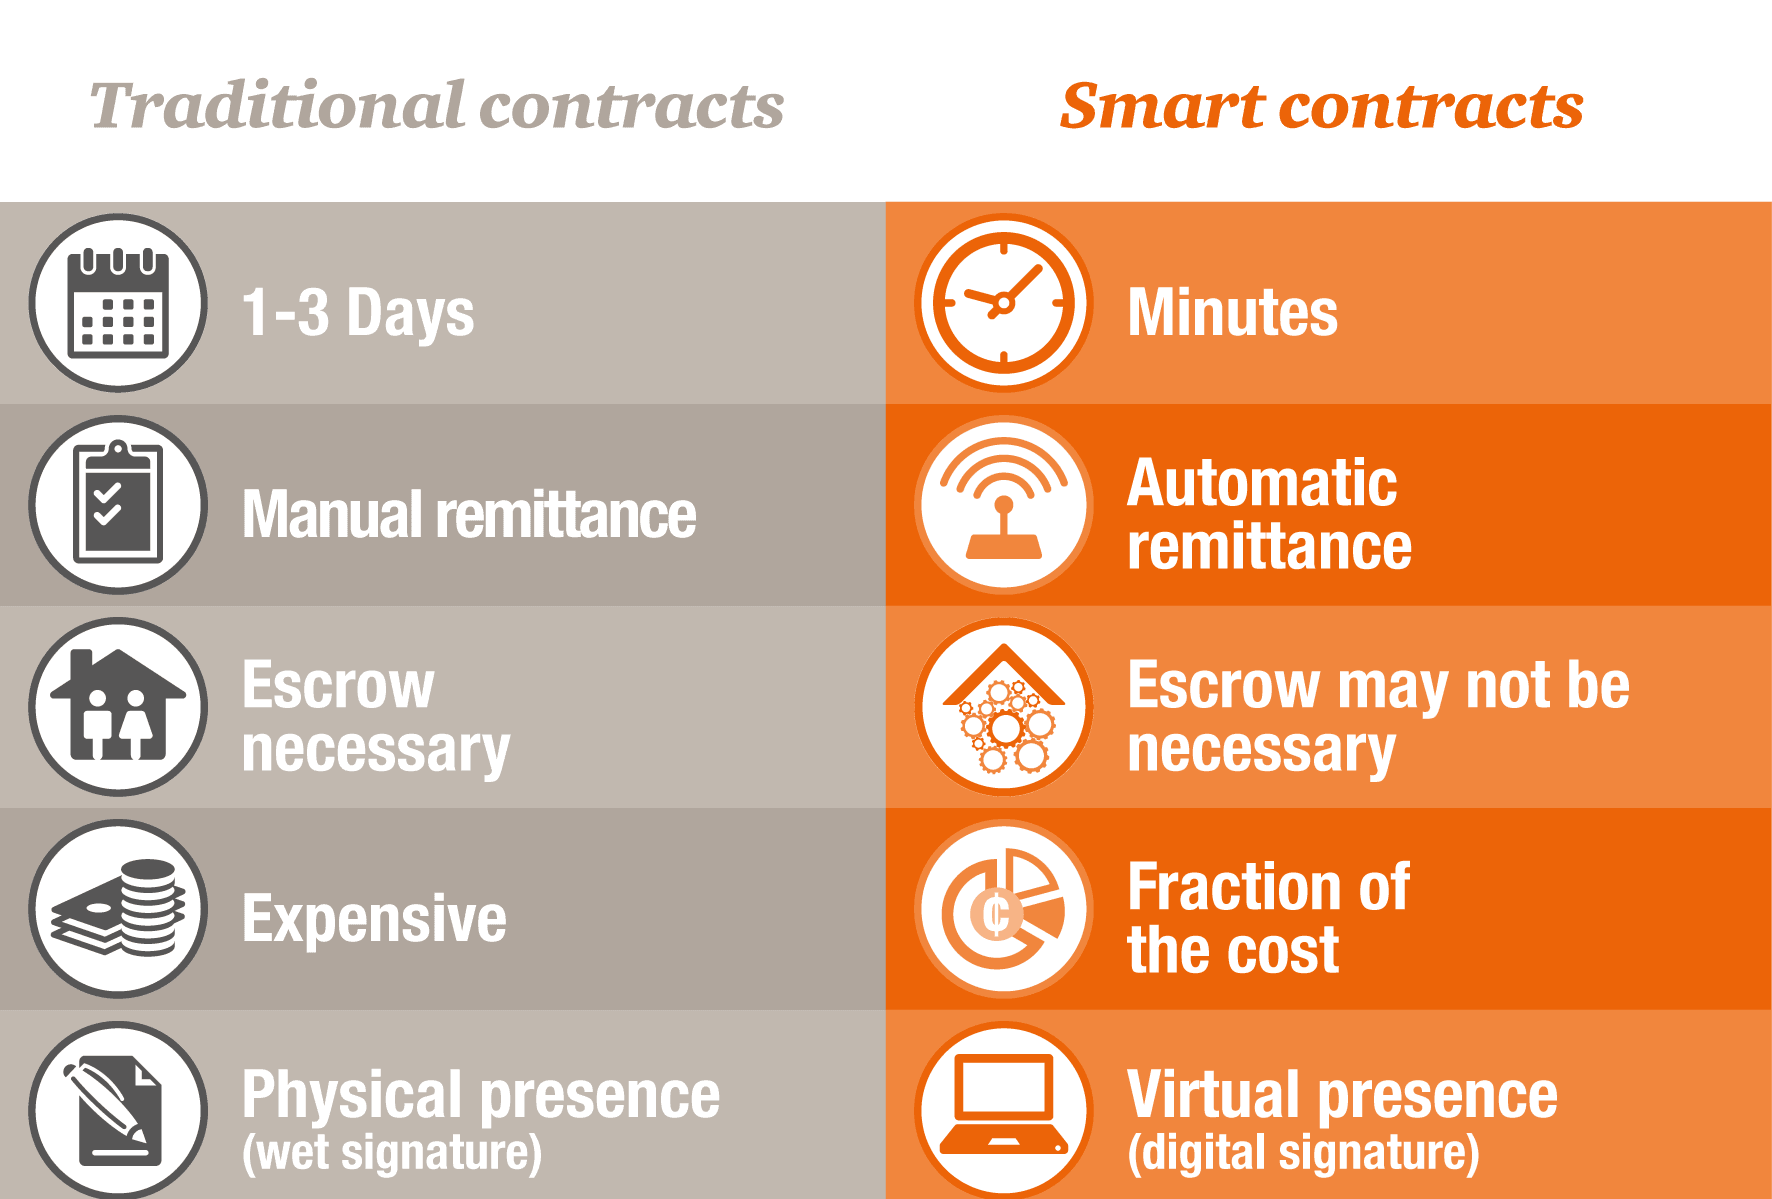 Like a traditional contract, a smart contract defines the rules and penalties around an agreement.